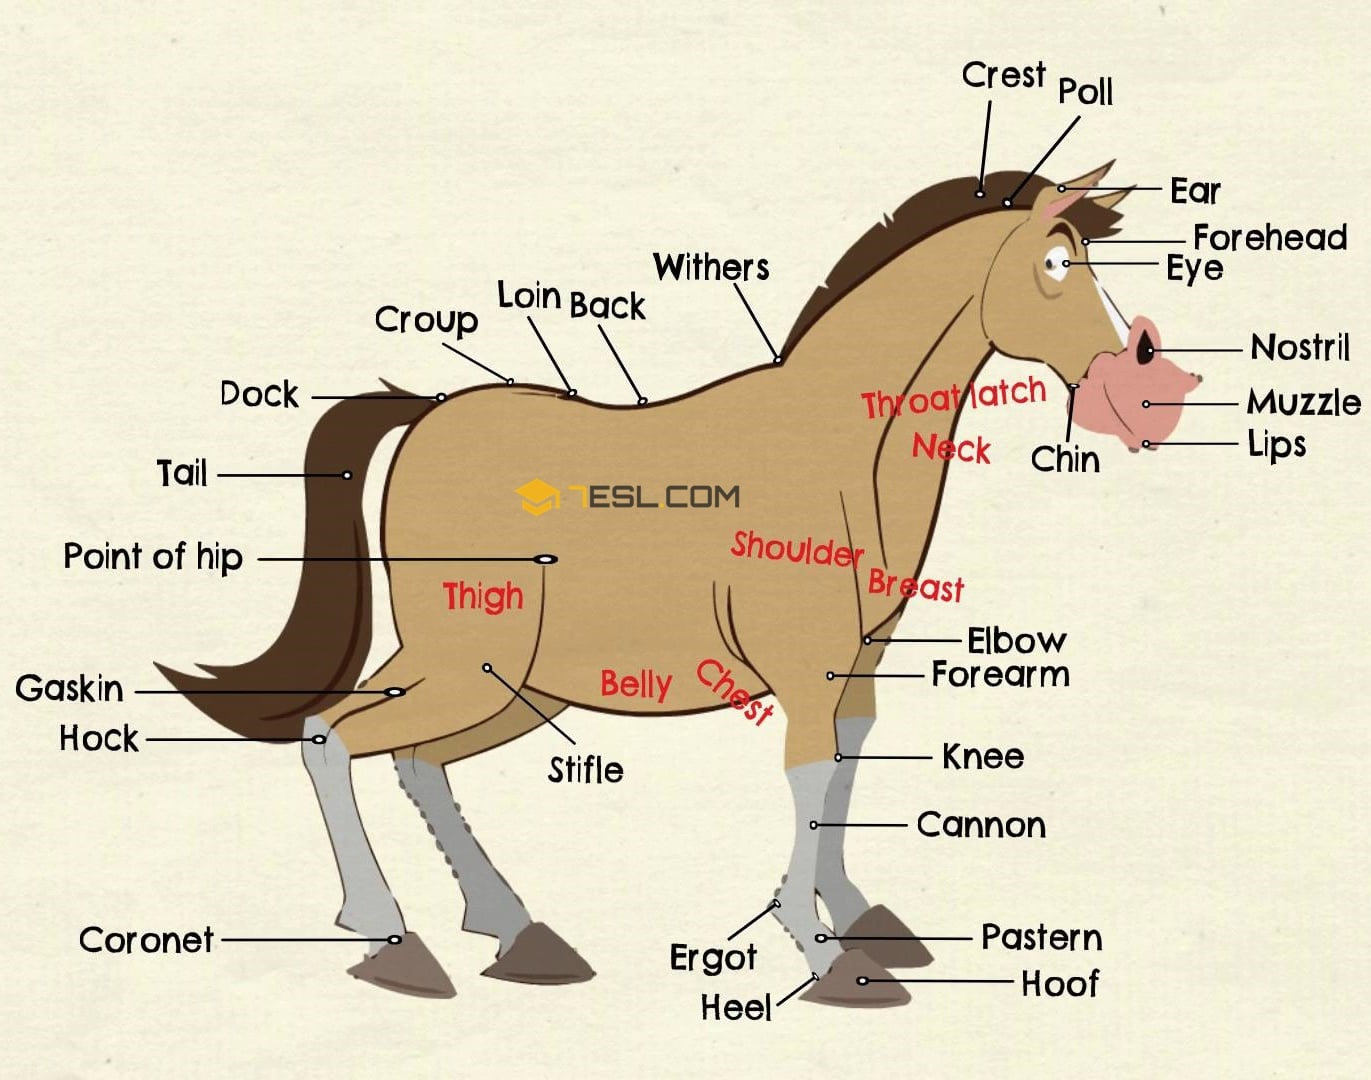 Parts Of A Horse Useful Horse Anatomy With Pictures 7 E S L